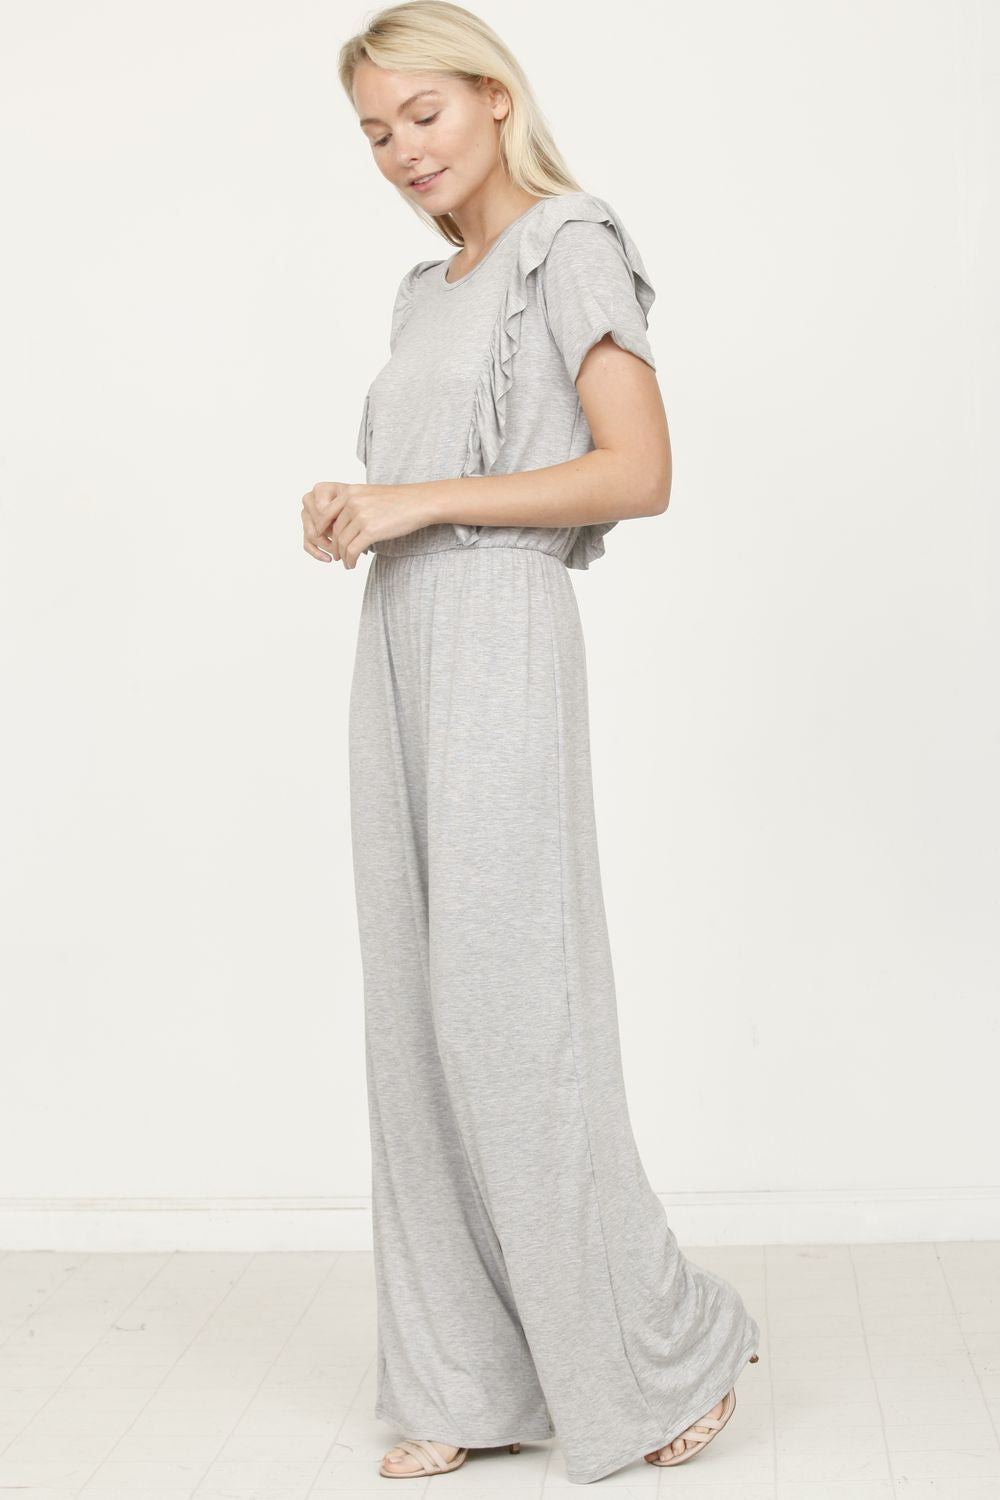 Solid Grey Short Sleeve Jumpsuit with Ruffle_Plus